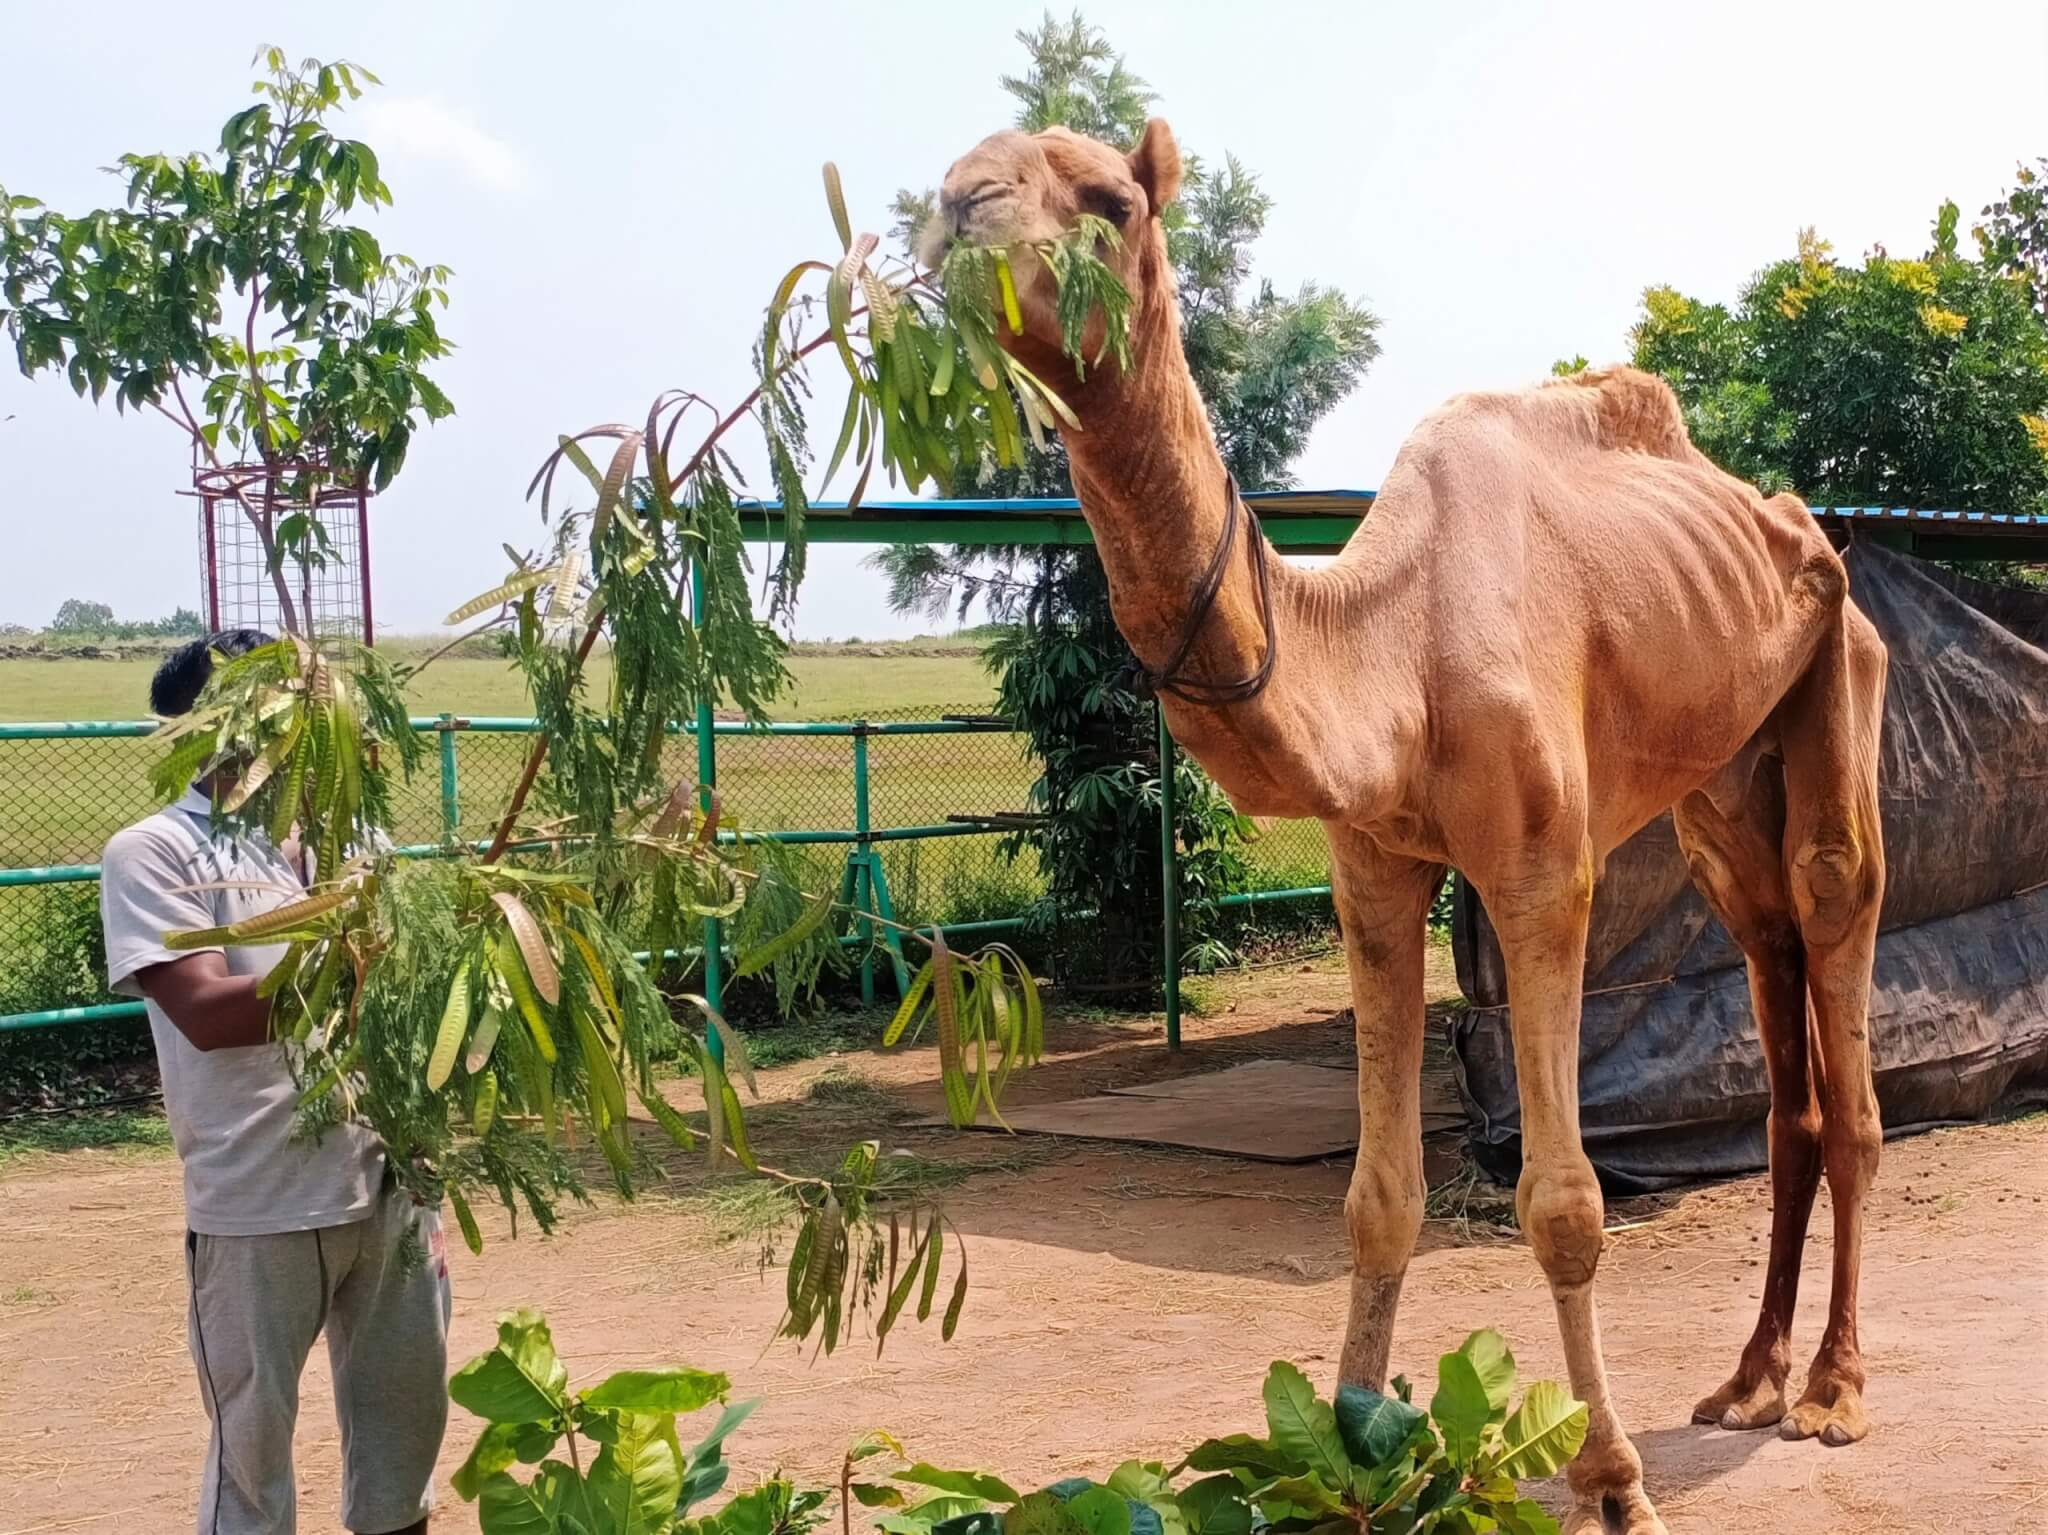 Samarth eagerly eats fresh green leaves. Meals like this will help him return to a healthy weight.